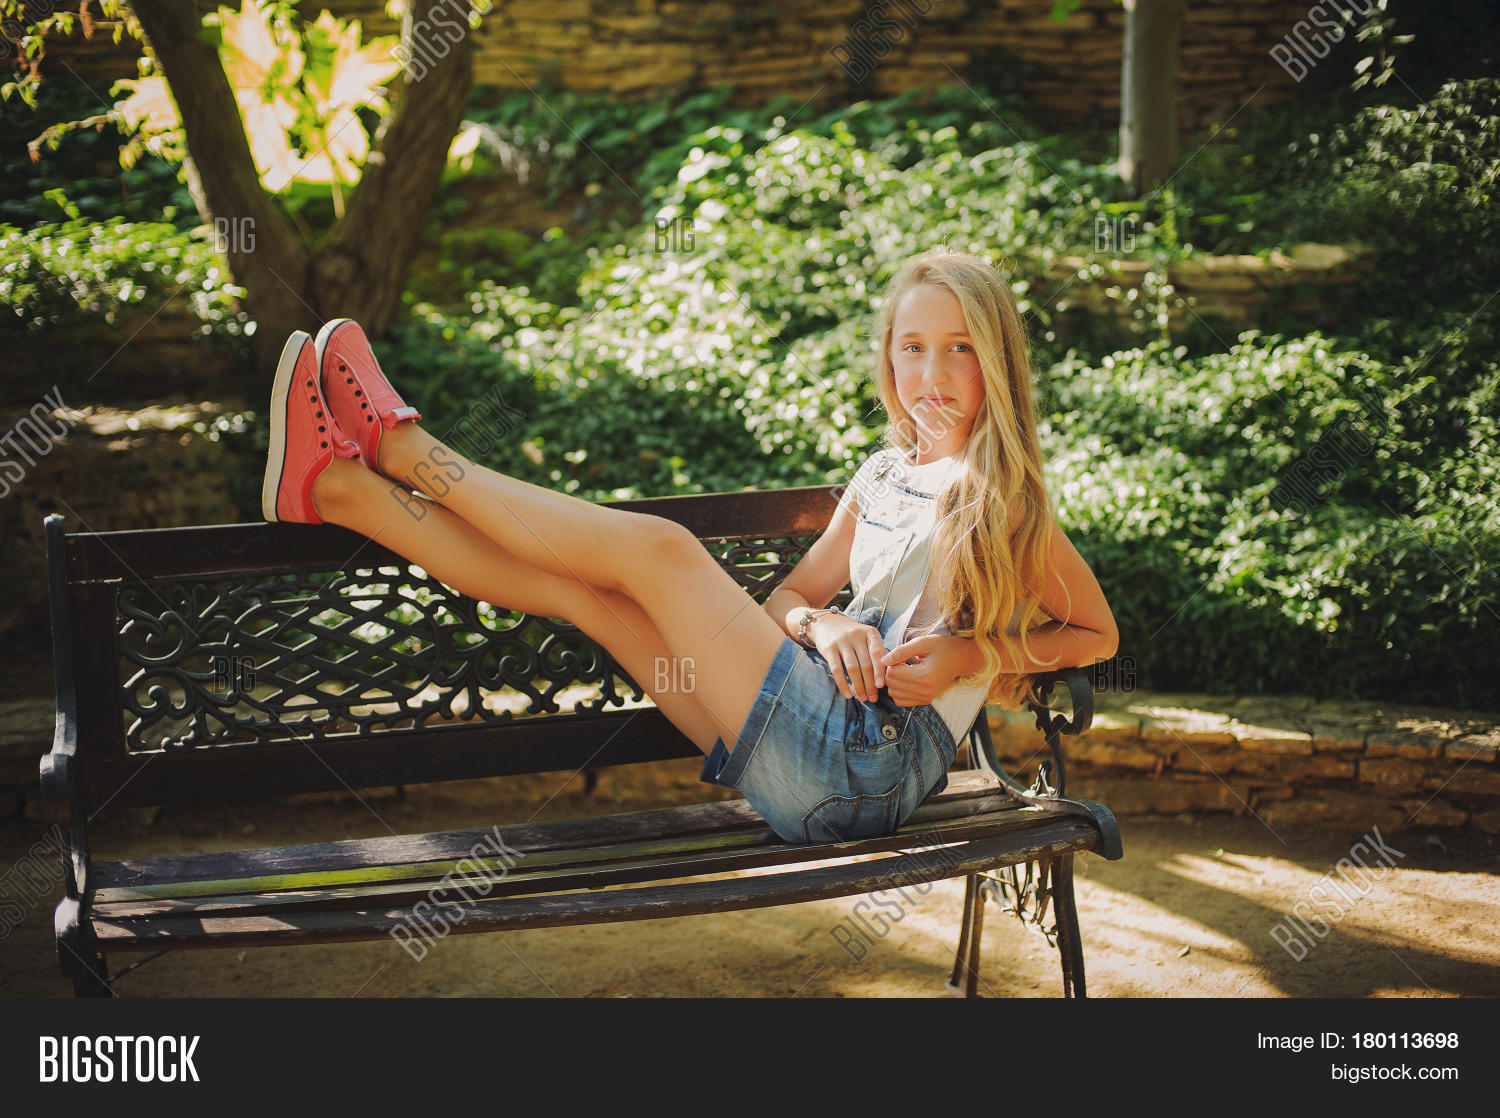 young girl sitting on image photo free trial bigstock